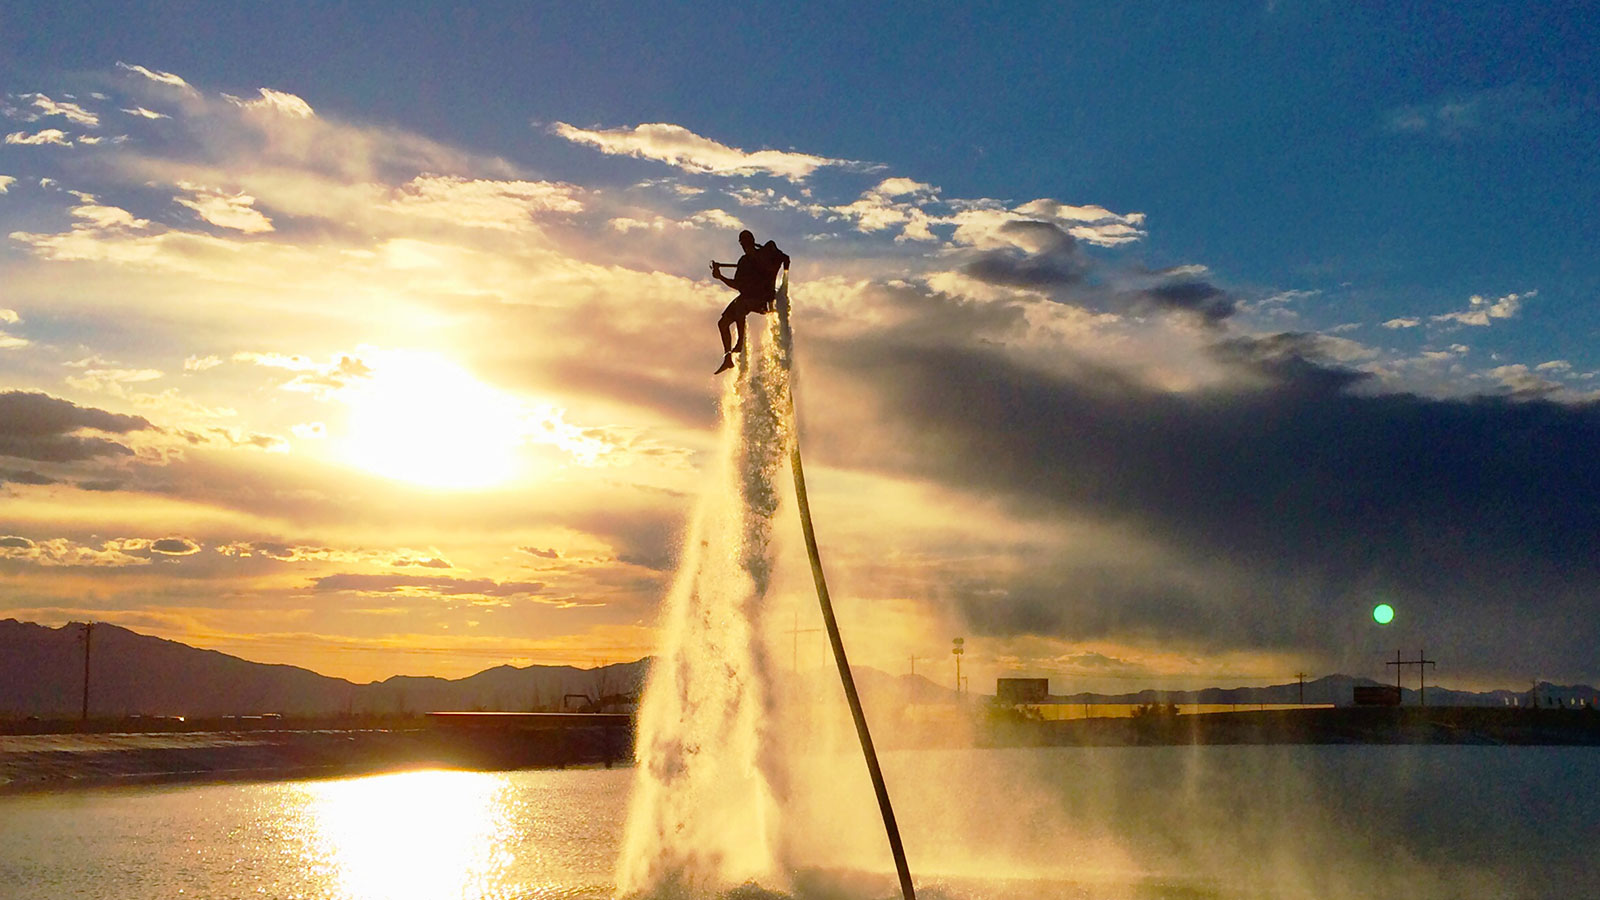 Jetpack America - Las Vegas Attractions